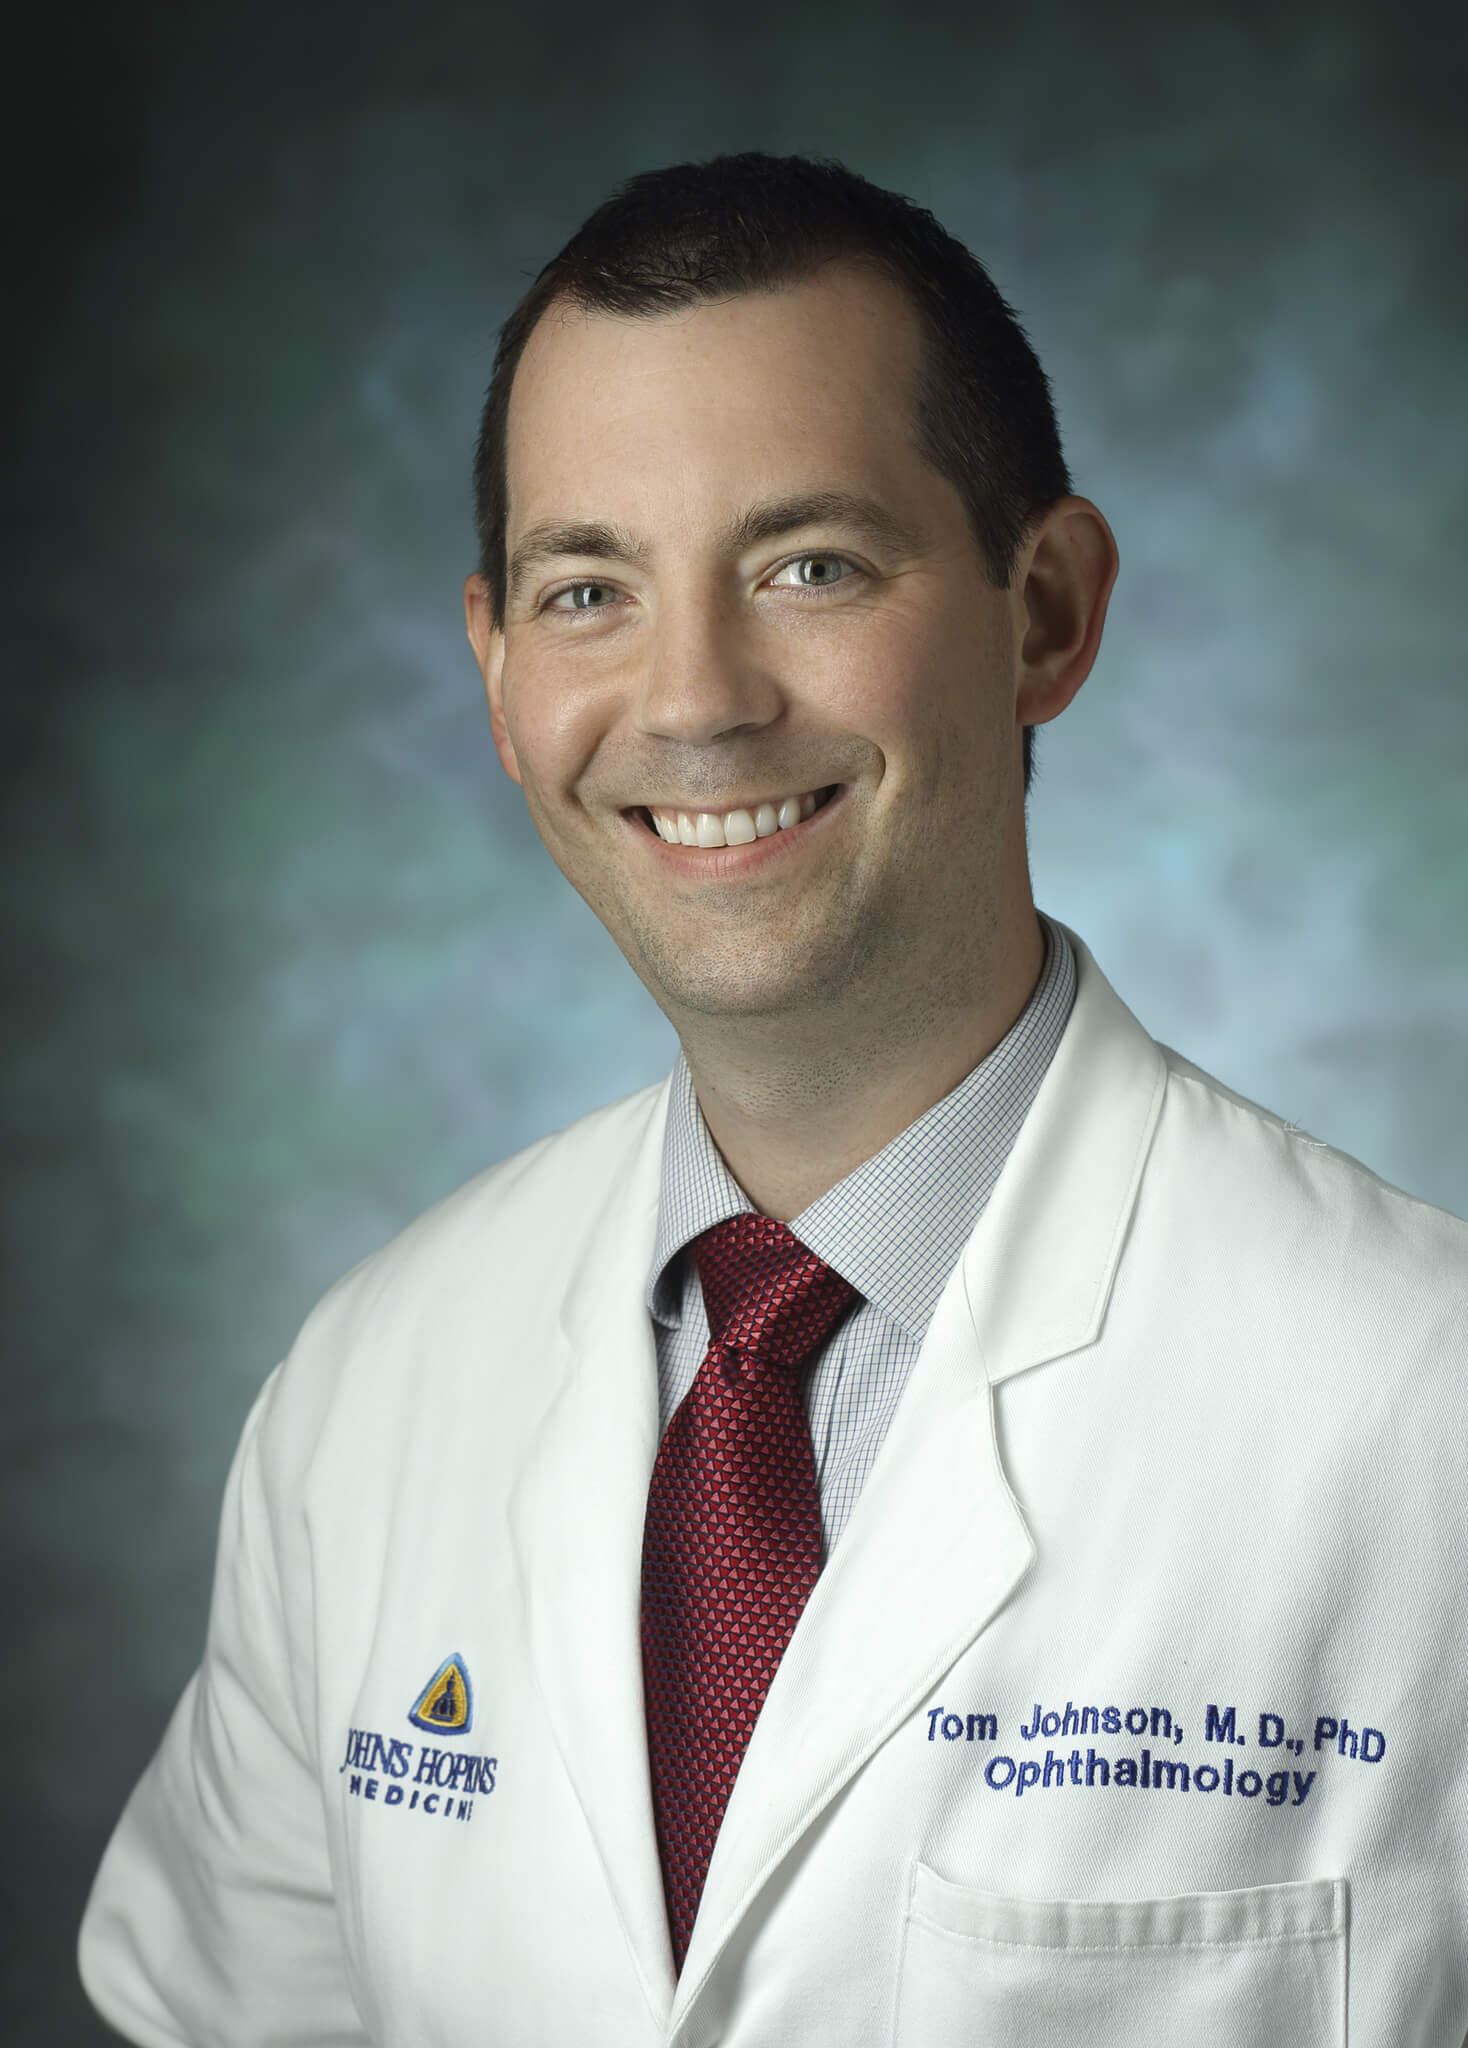 Dr. Thomas Johnson